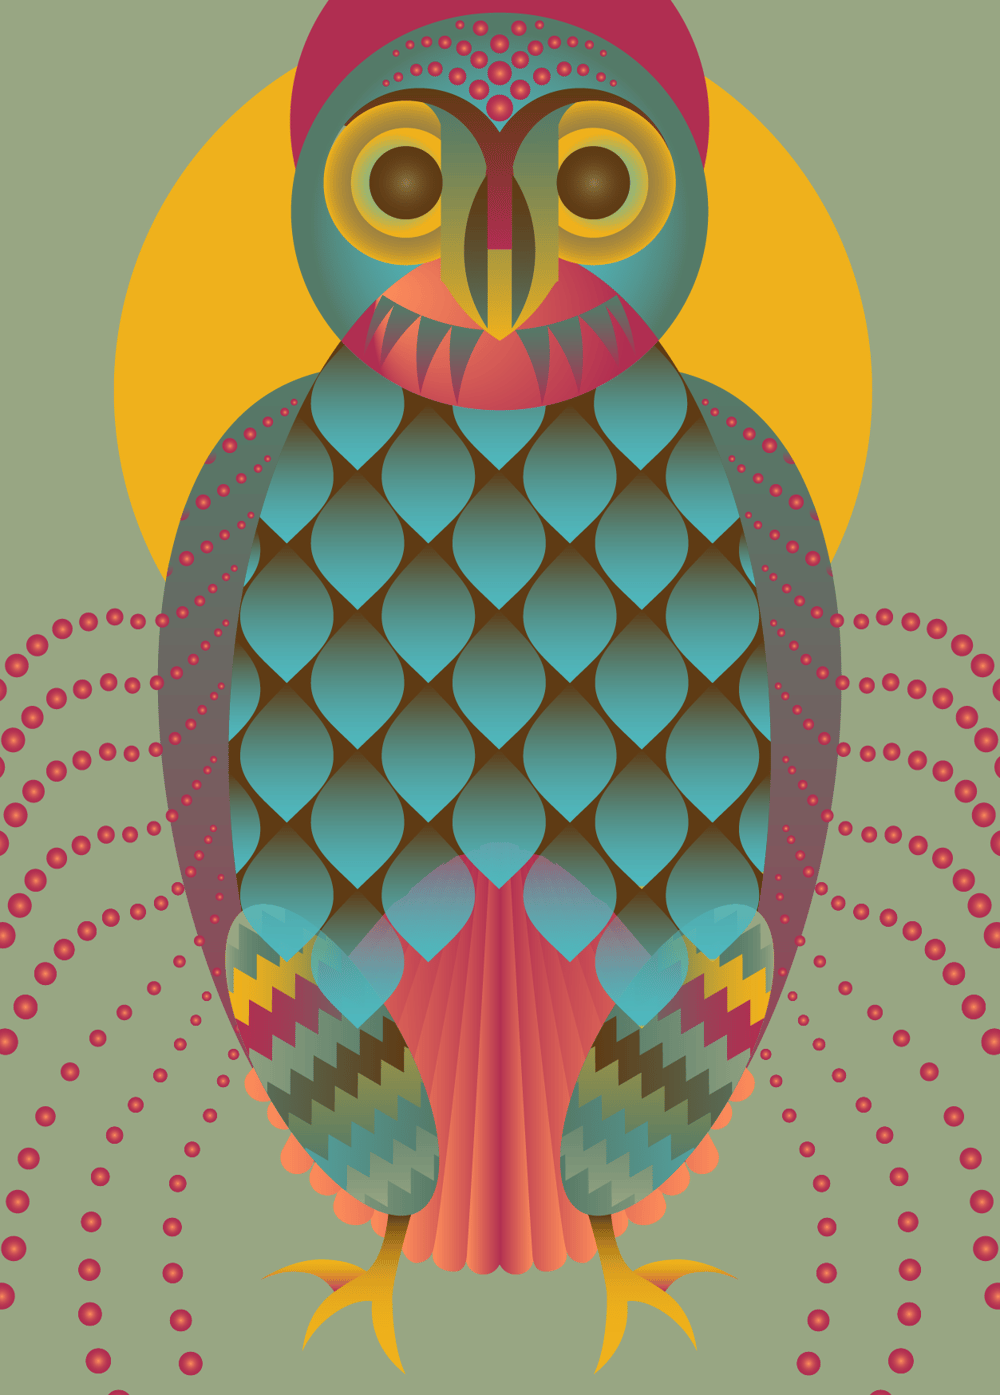 Geometrical Owl - image 2 - student project